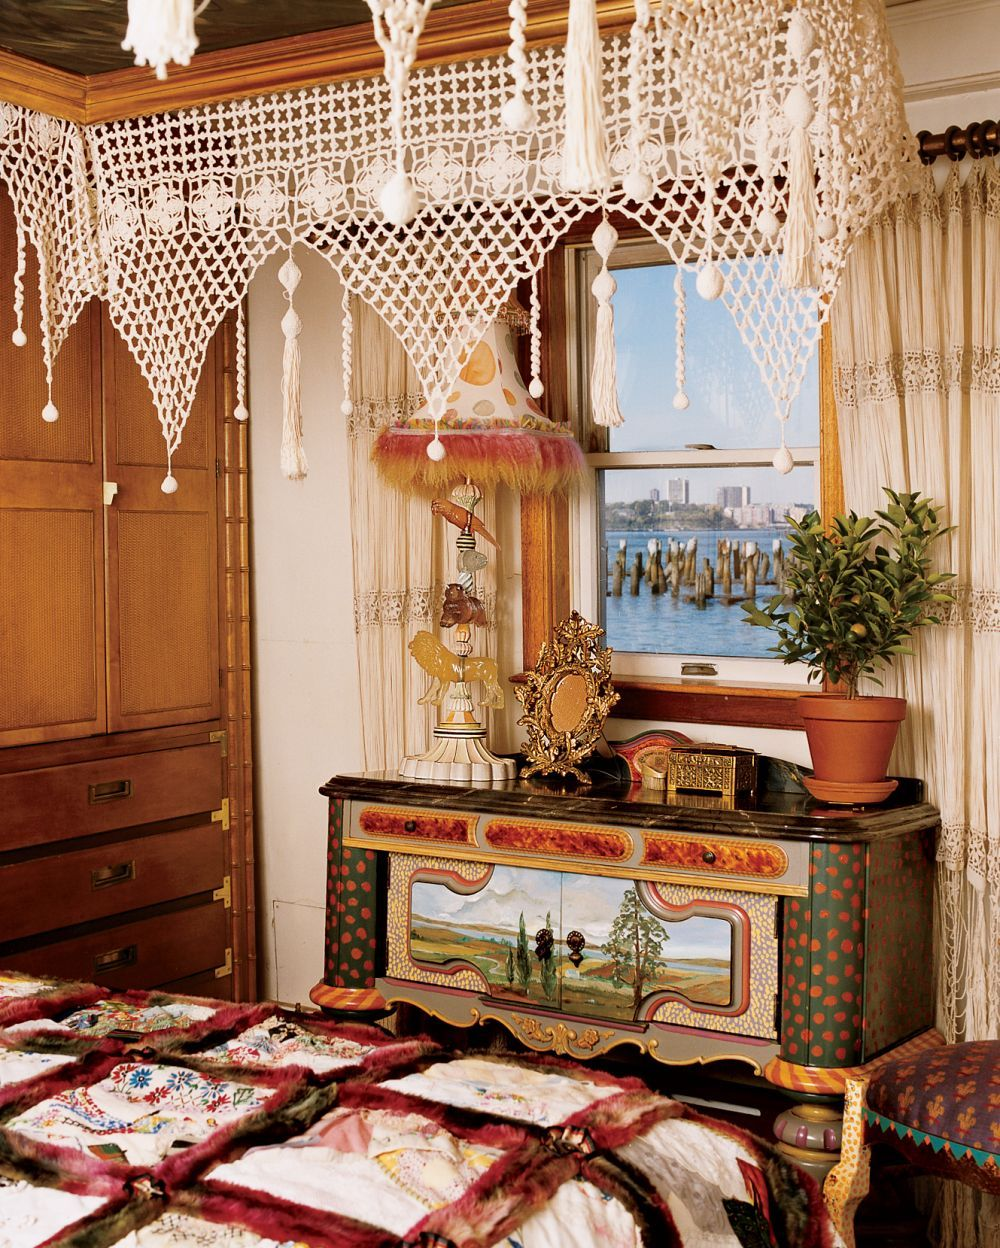 exotic bedroom by victoria and richard mackenziechilds  house  - exotic bedroom by victoria and richard mackenziechilds